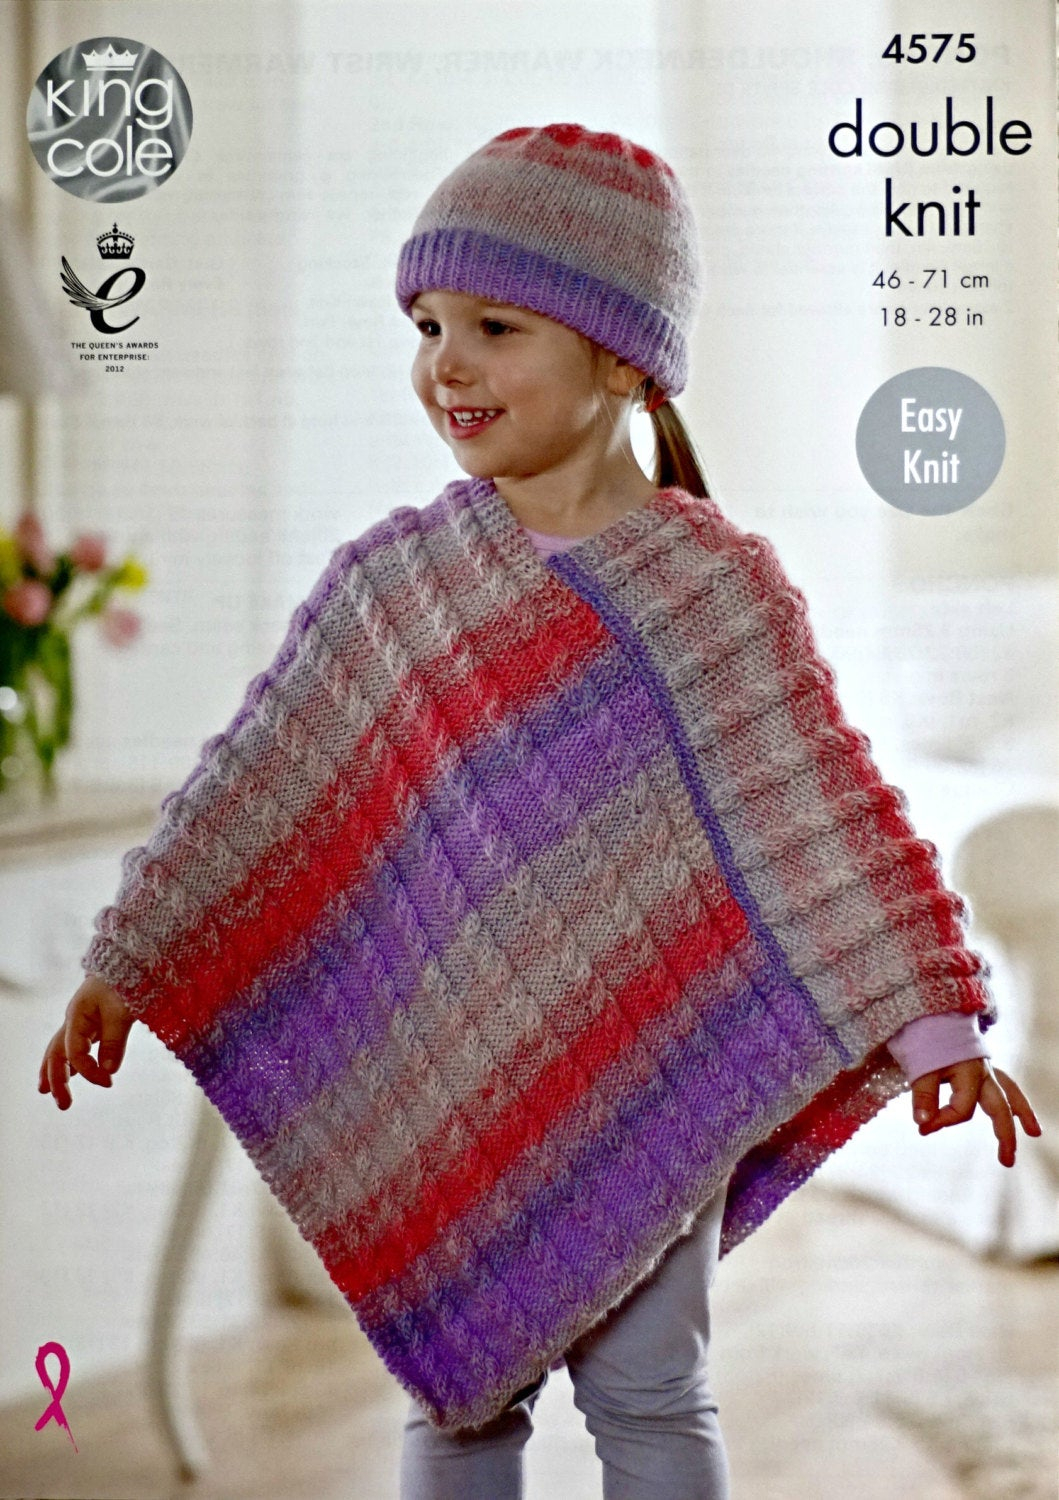 Knitting Pattern For Childs Poncho Girls Knitting Pattern K4575 Girls Easy Knit Cable Poncho And Hat Knitting Pattern Sprite Dk Light Worsted King Cole